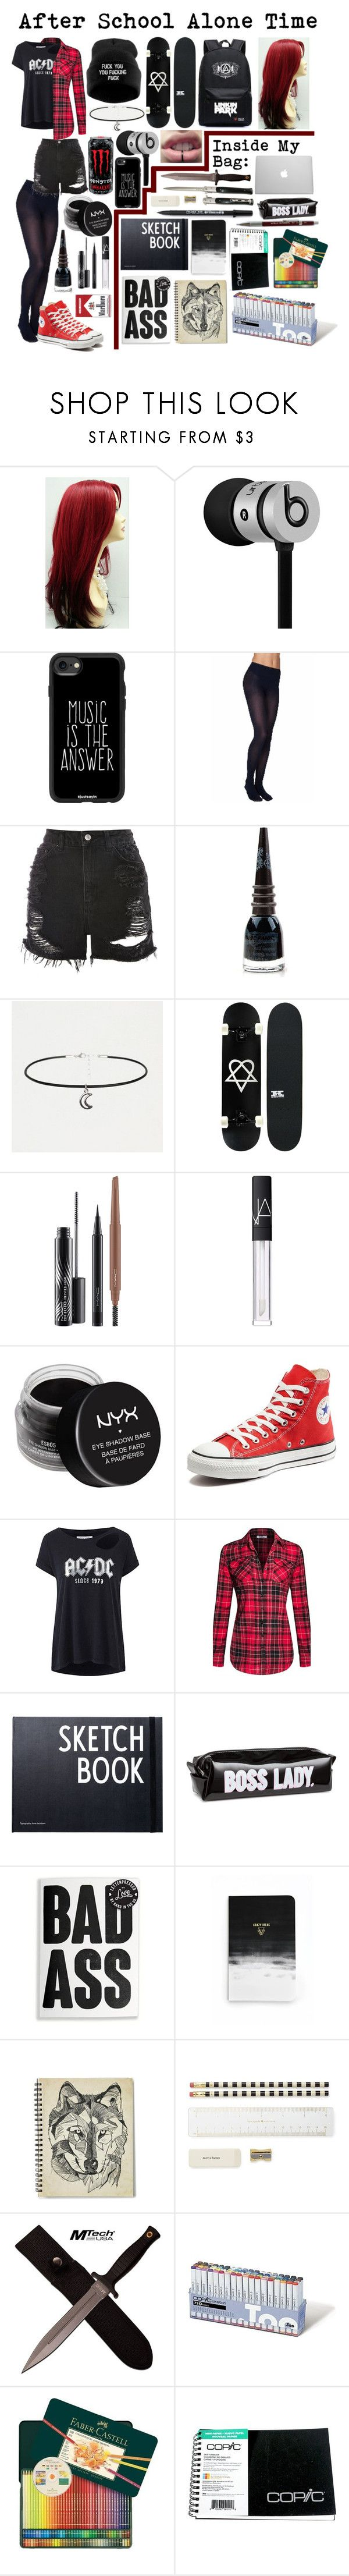 "e8df73abed25874f55c8d580d5a6c951 - ""Untitled #8"" by thebloodymassacre on Polyvore featuring Beats by Dr. Dre, Caset..."